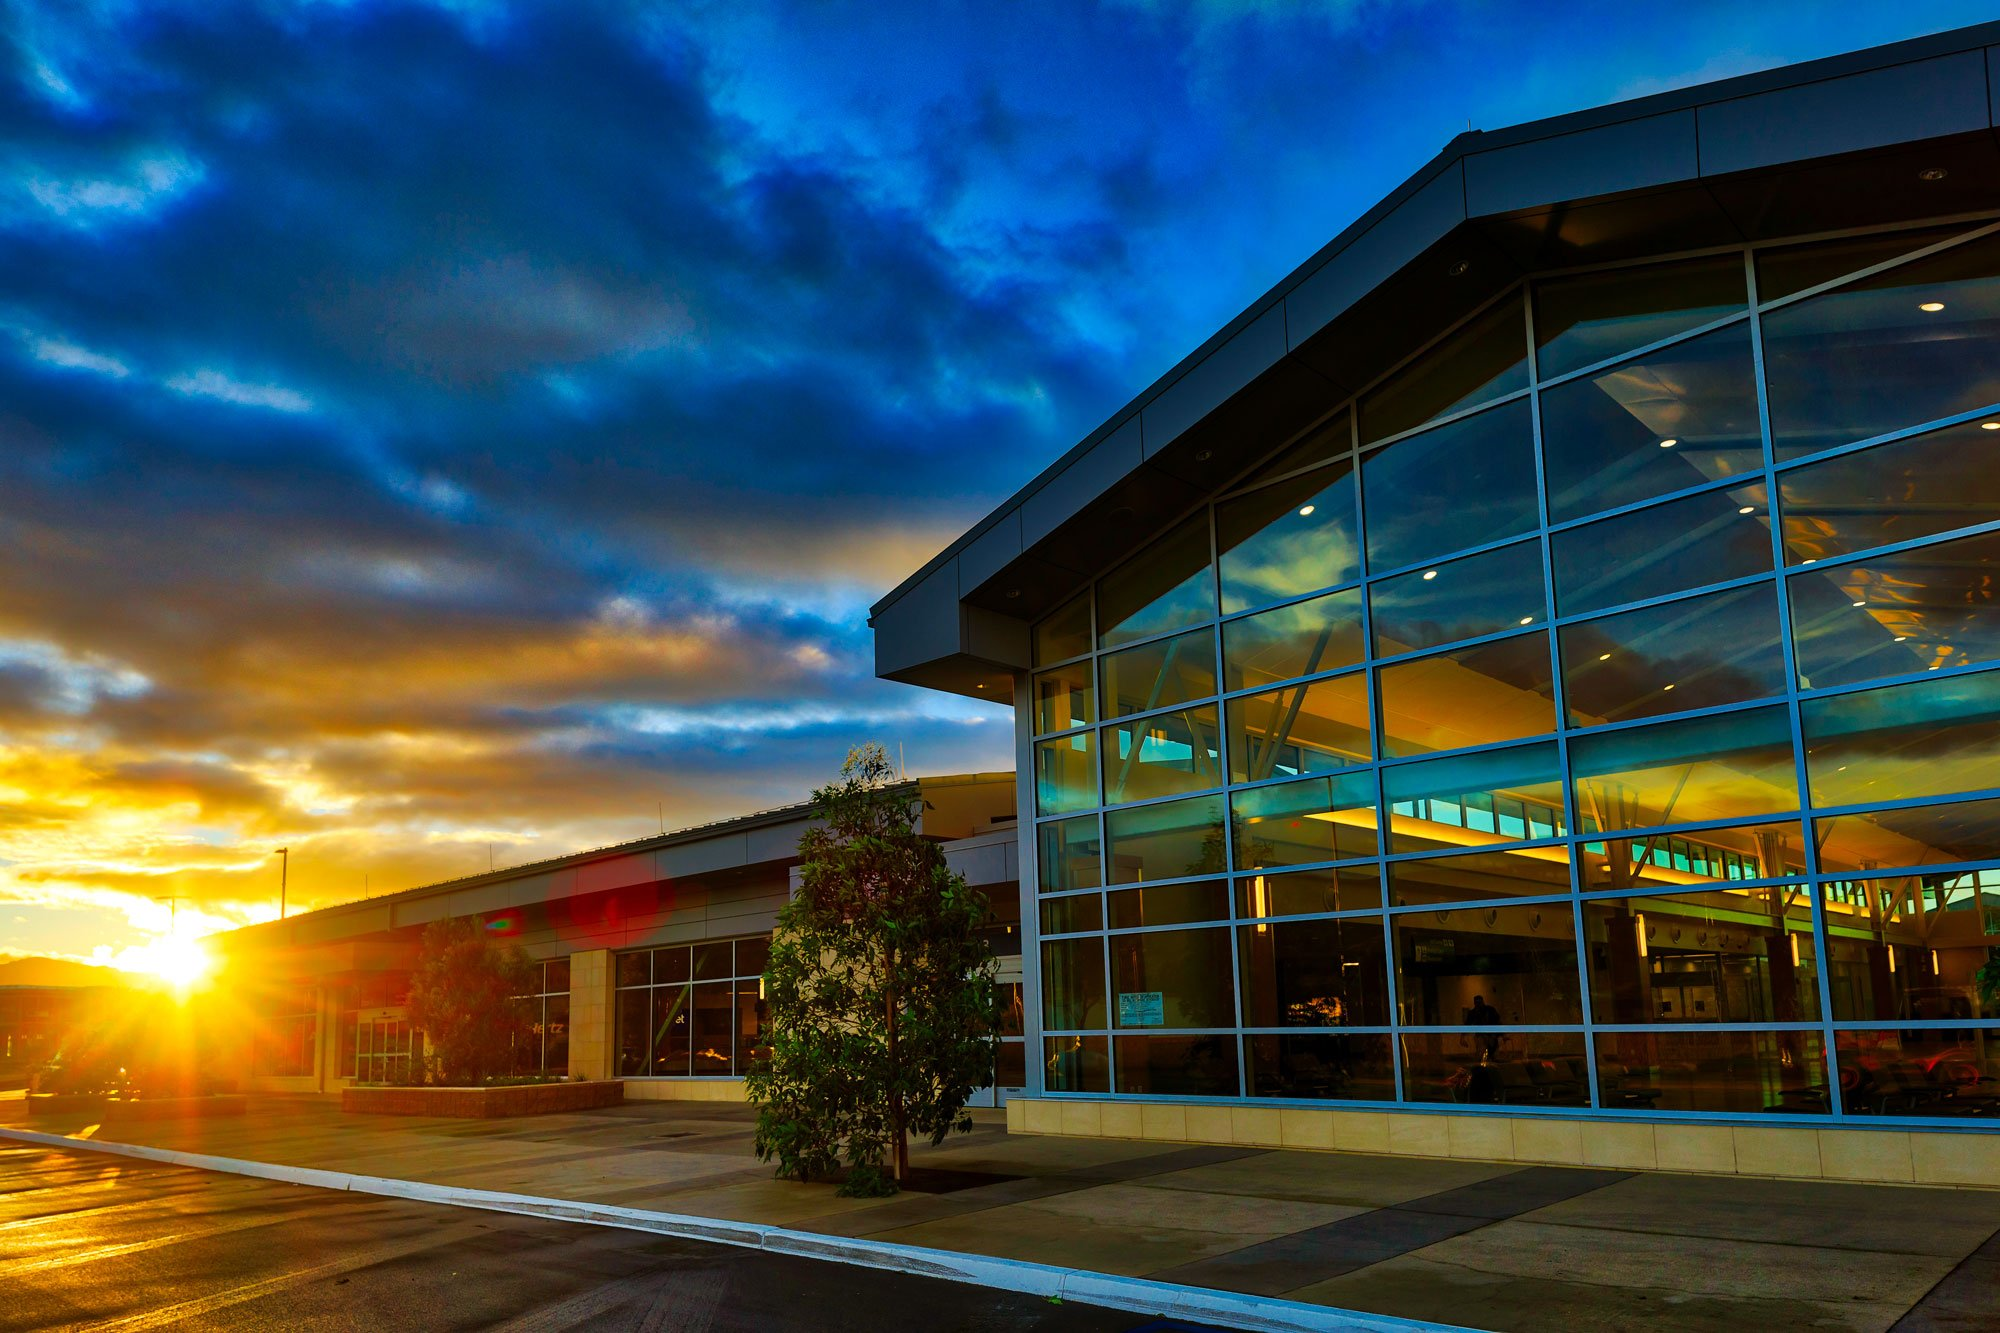 Midway Airport Parking >> Home - San Luis Obispo County Regional Airport